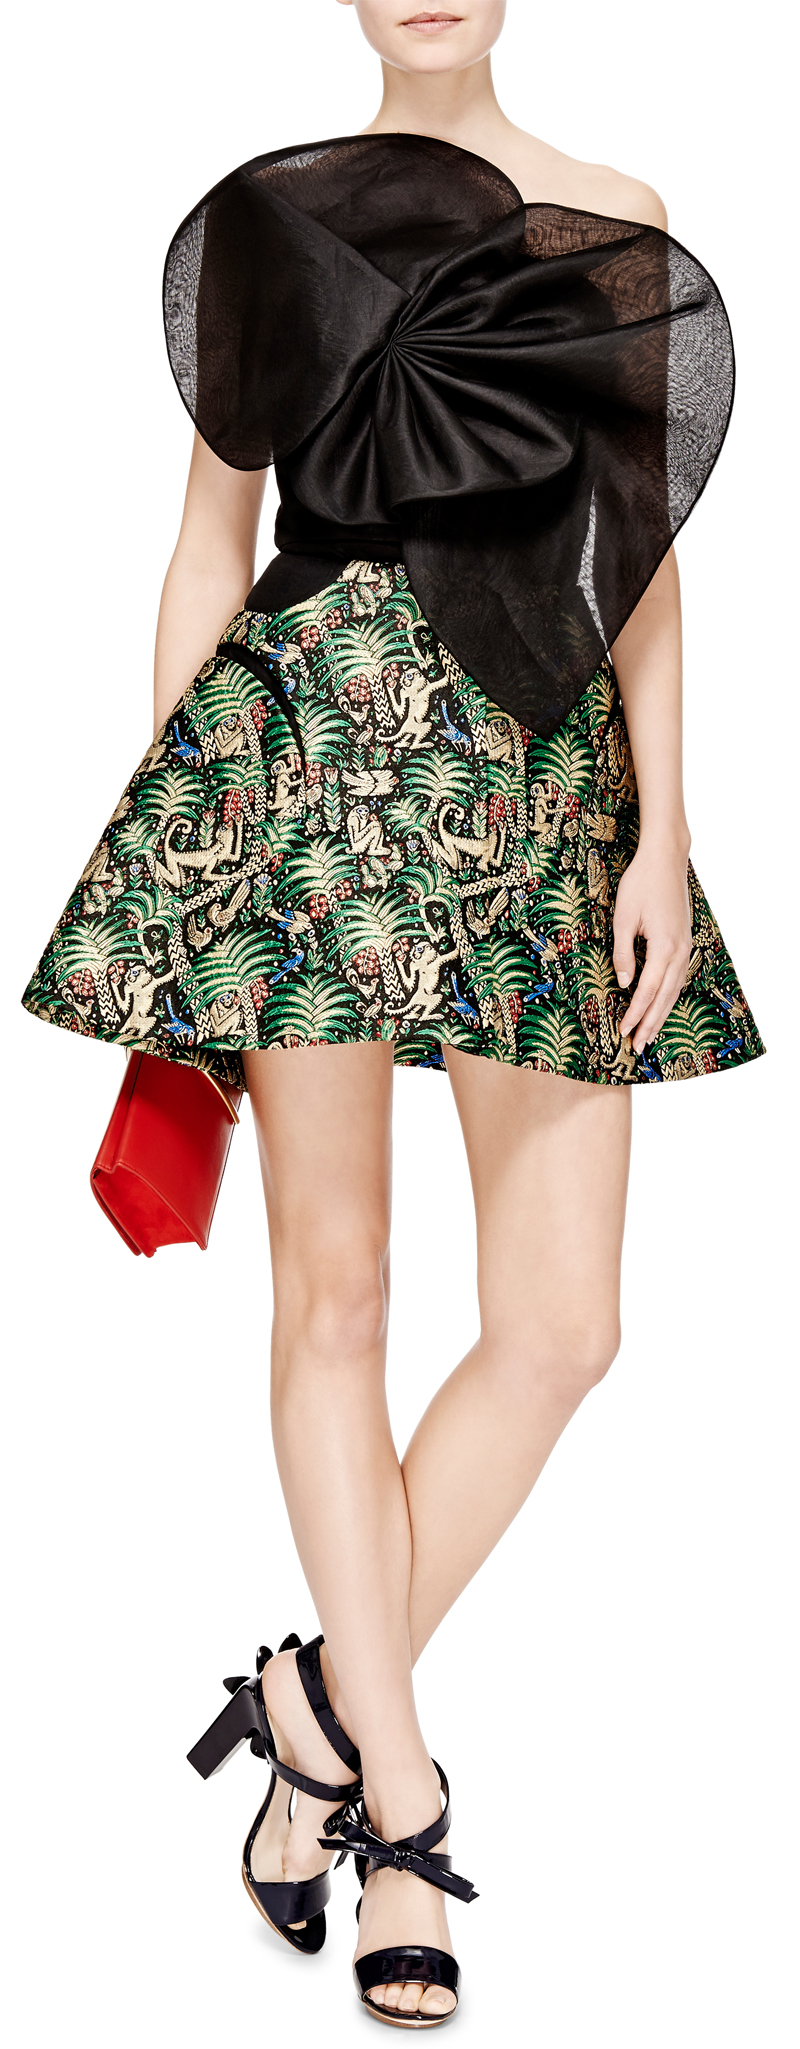 Delpozo black organza top with Delpozo green jungle print jacquard skirt